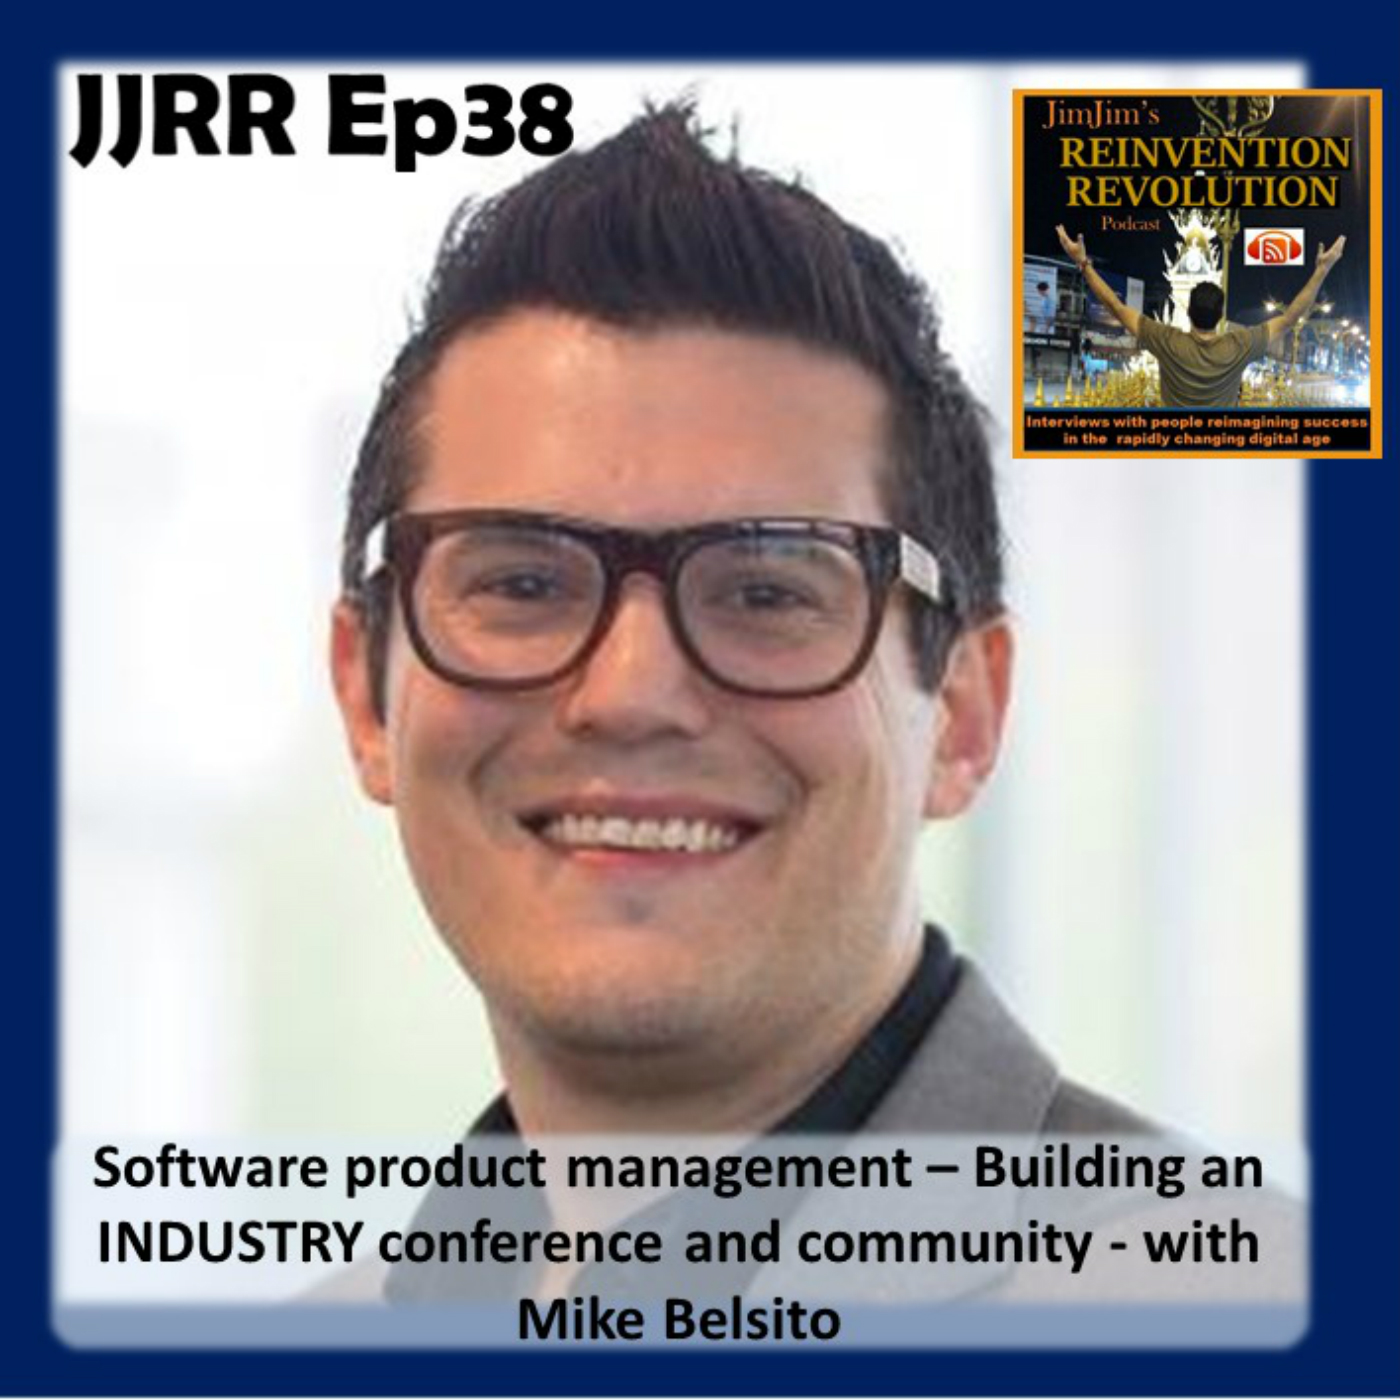 JJRR Ep38 Software product management – Building an INDUSTRY conference and community – with Mike Belsito